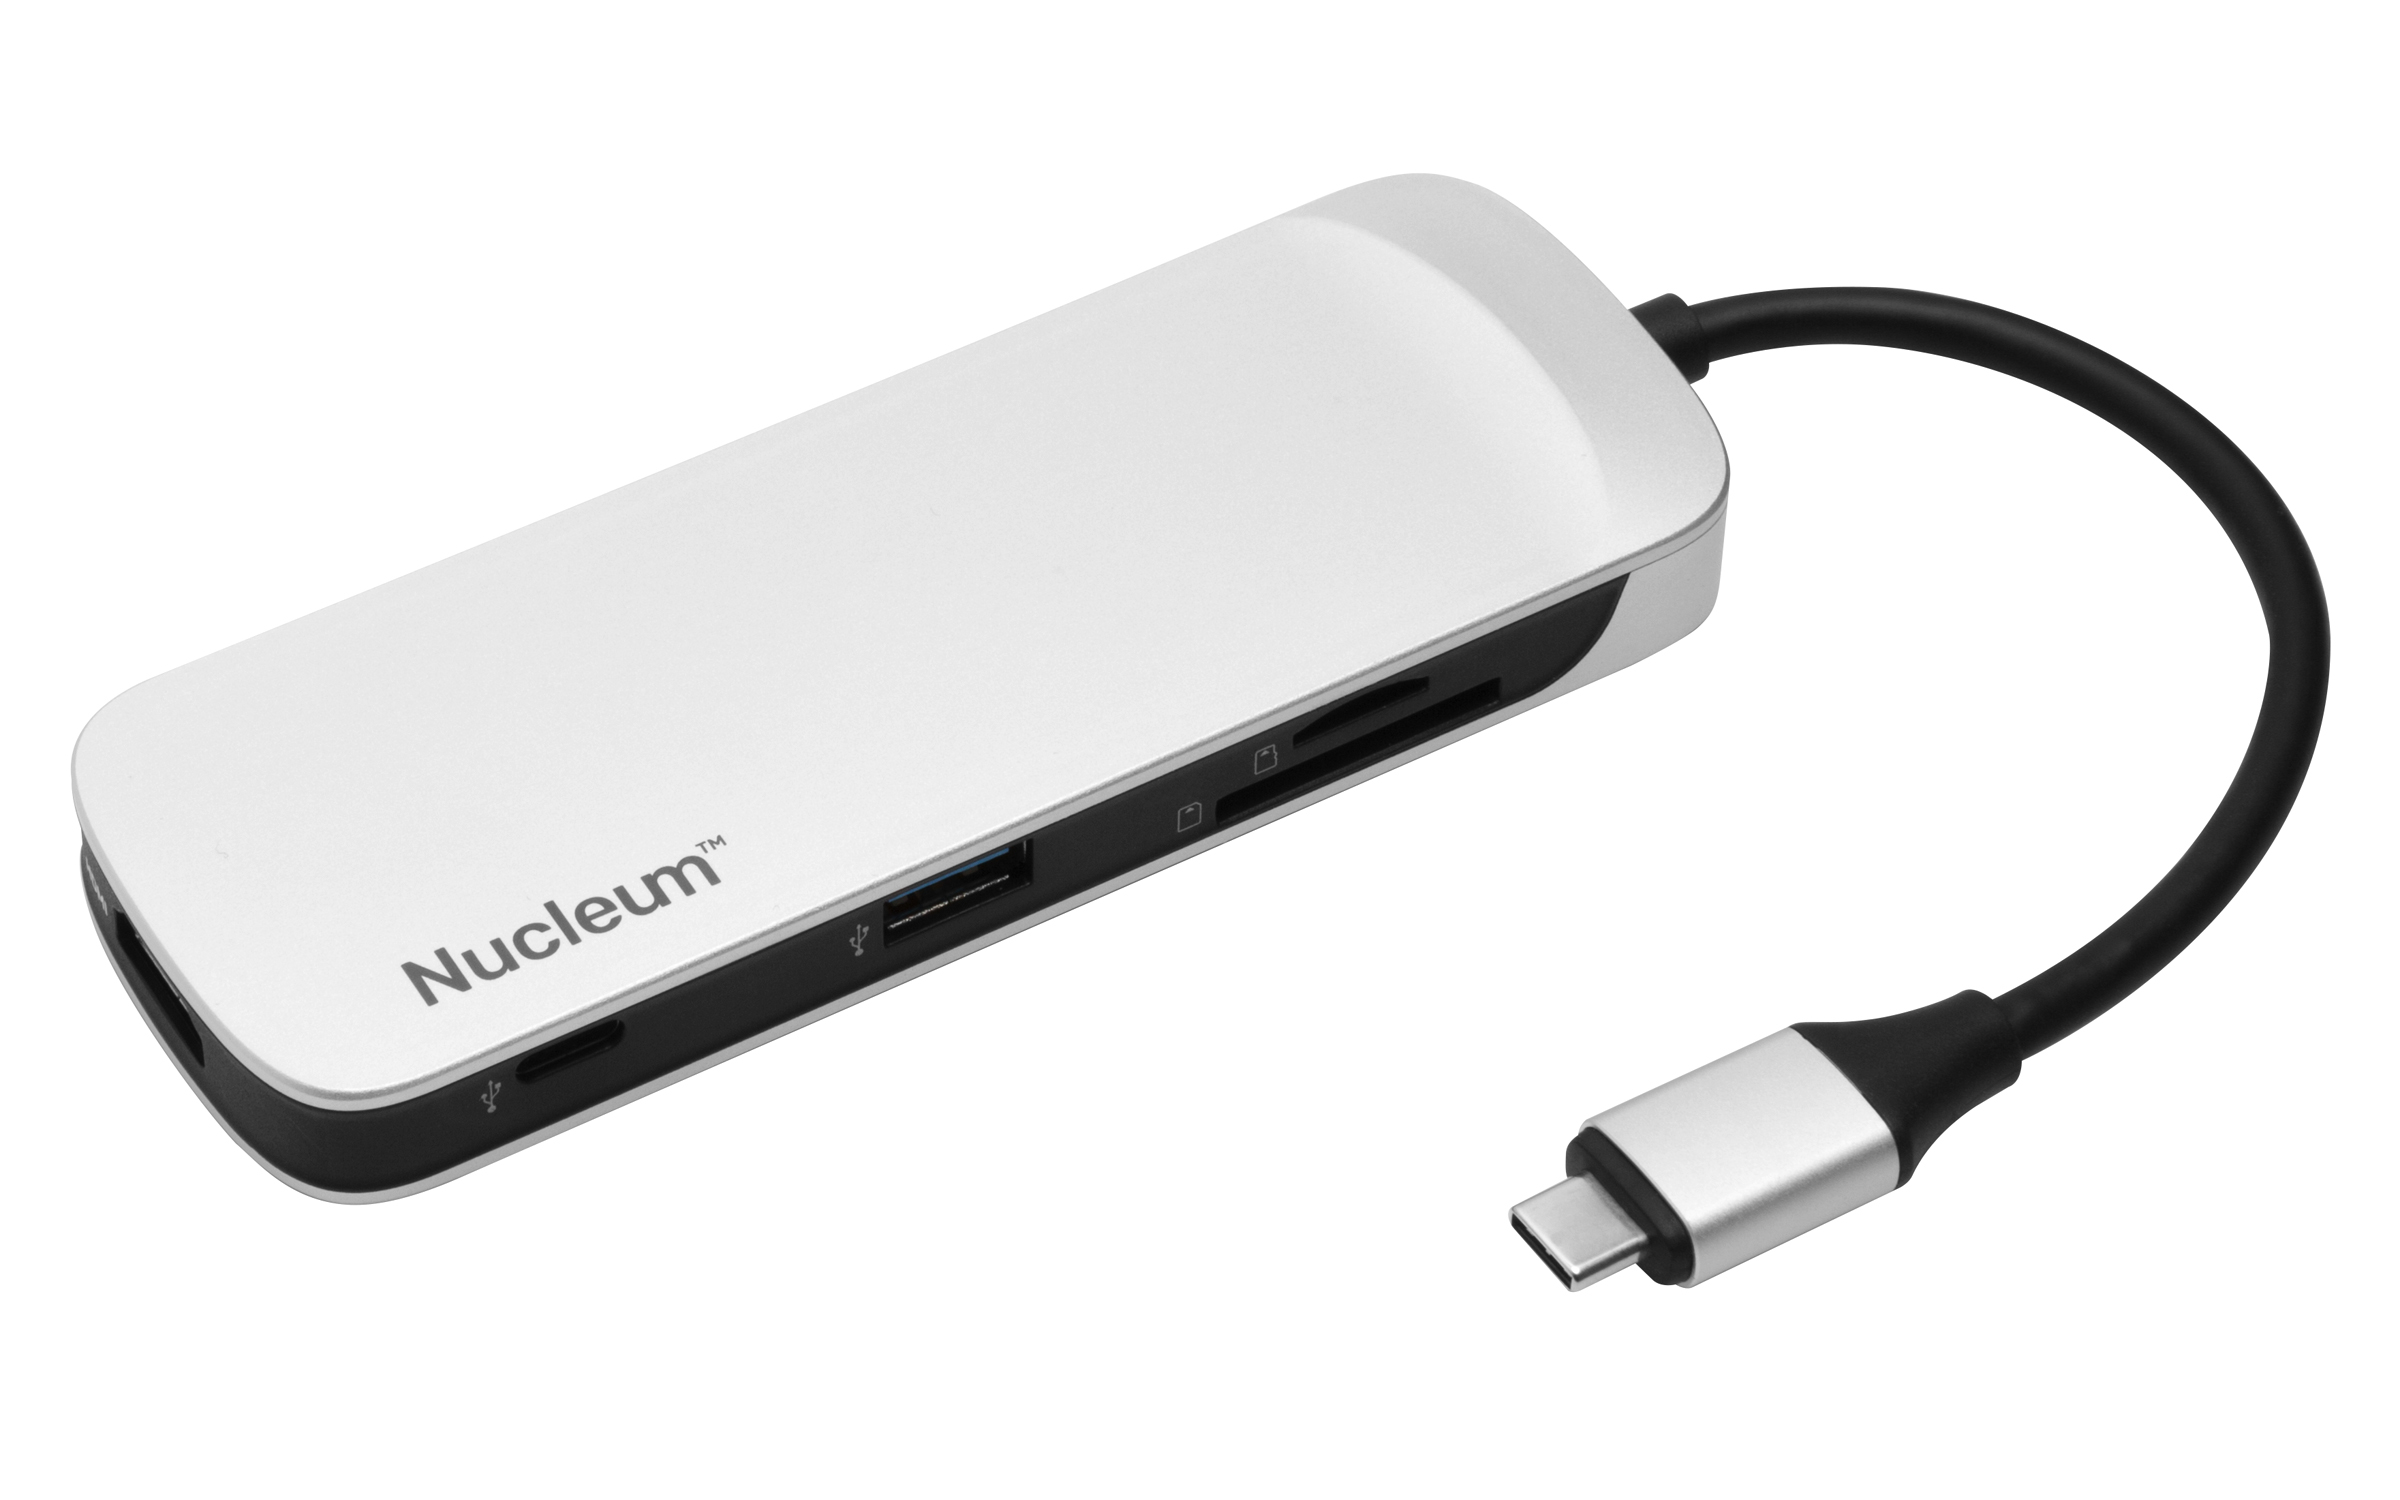 kingston nucleum usb c hub 7 in 1 type c adapter connect usb 3 microSD Converter kingston nucleum usb c hub 7 in 1 type c adapter connect usb 3 4k usb c to hdmi sd card and microsd card ports usb type c thunderbolt 3 data port and